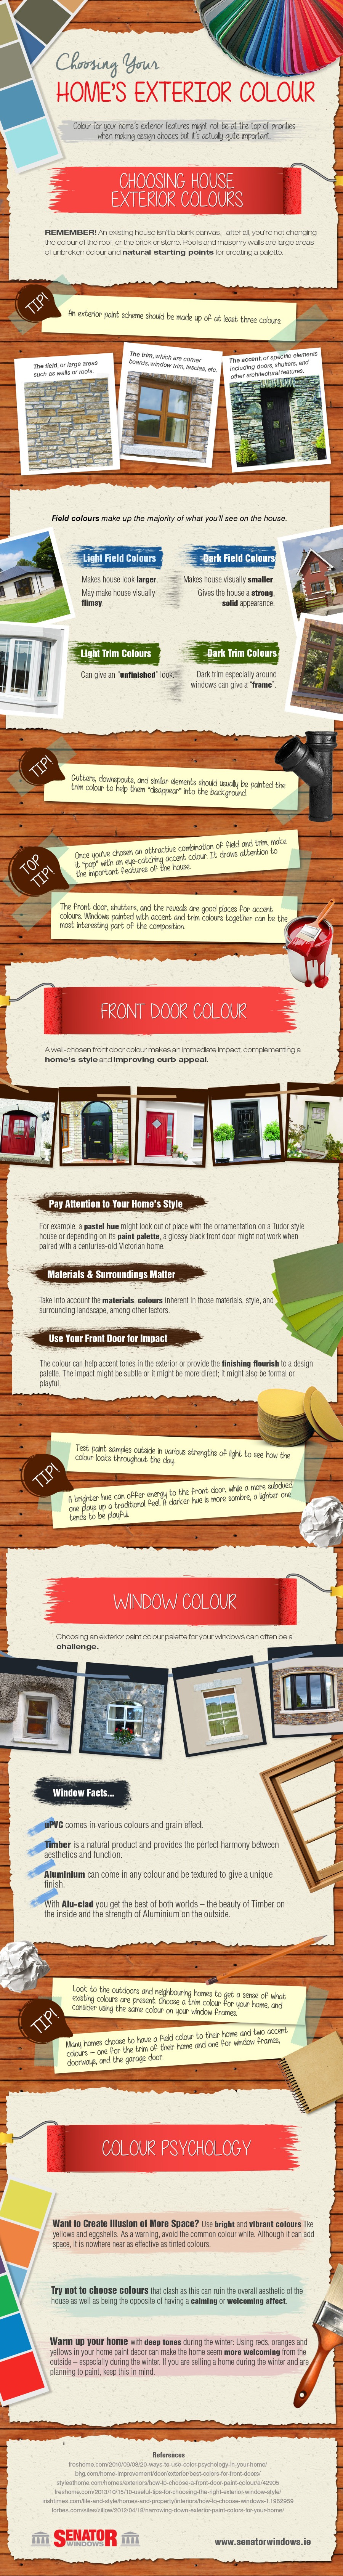 Colour Projects for the Home - Senator Windows Infographic